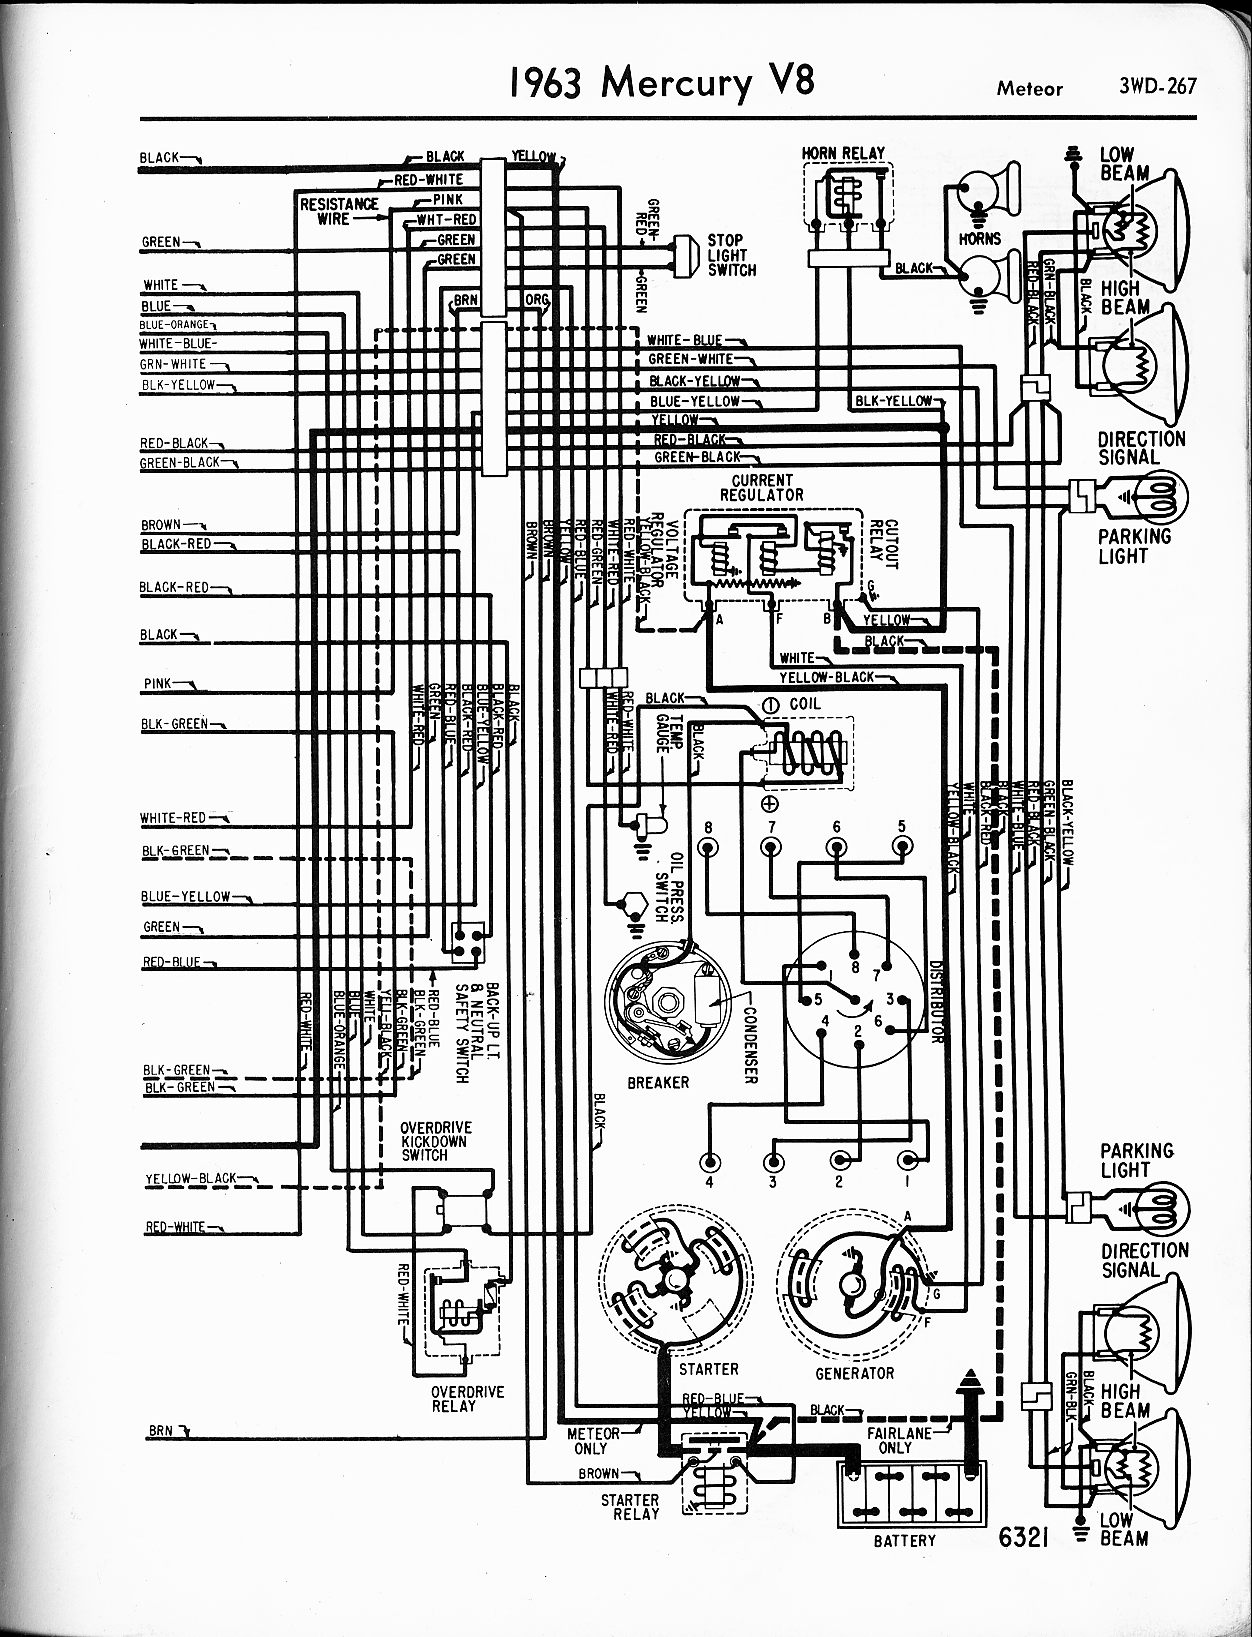 63 chevy nova wiring diagram 63 circuit diagrams